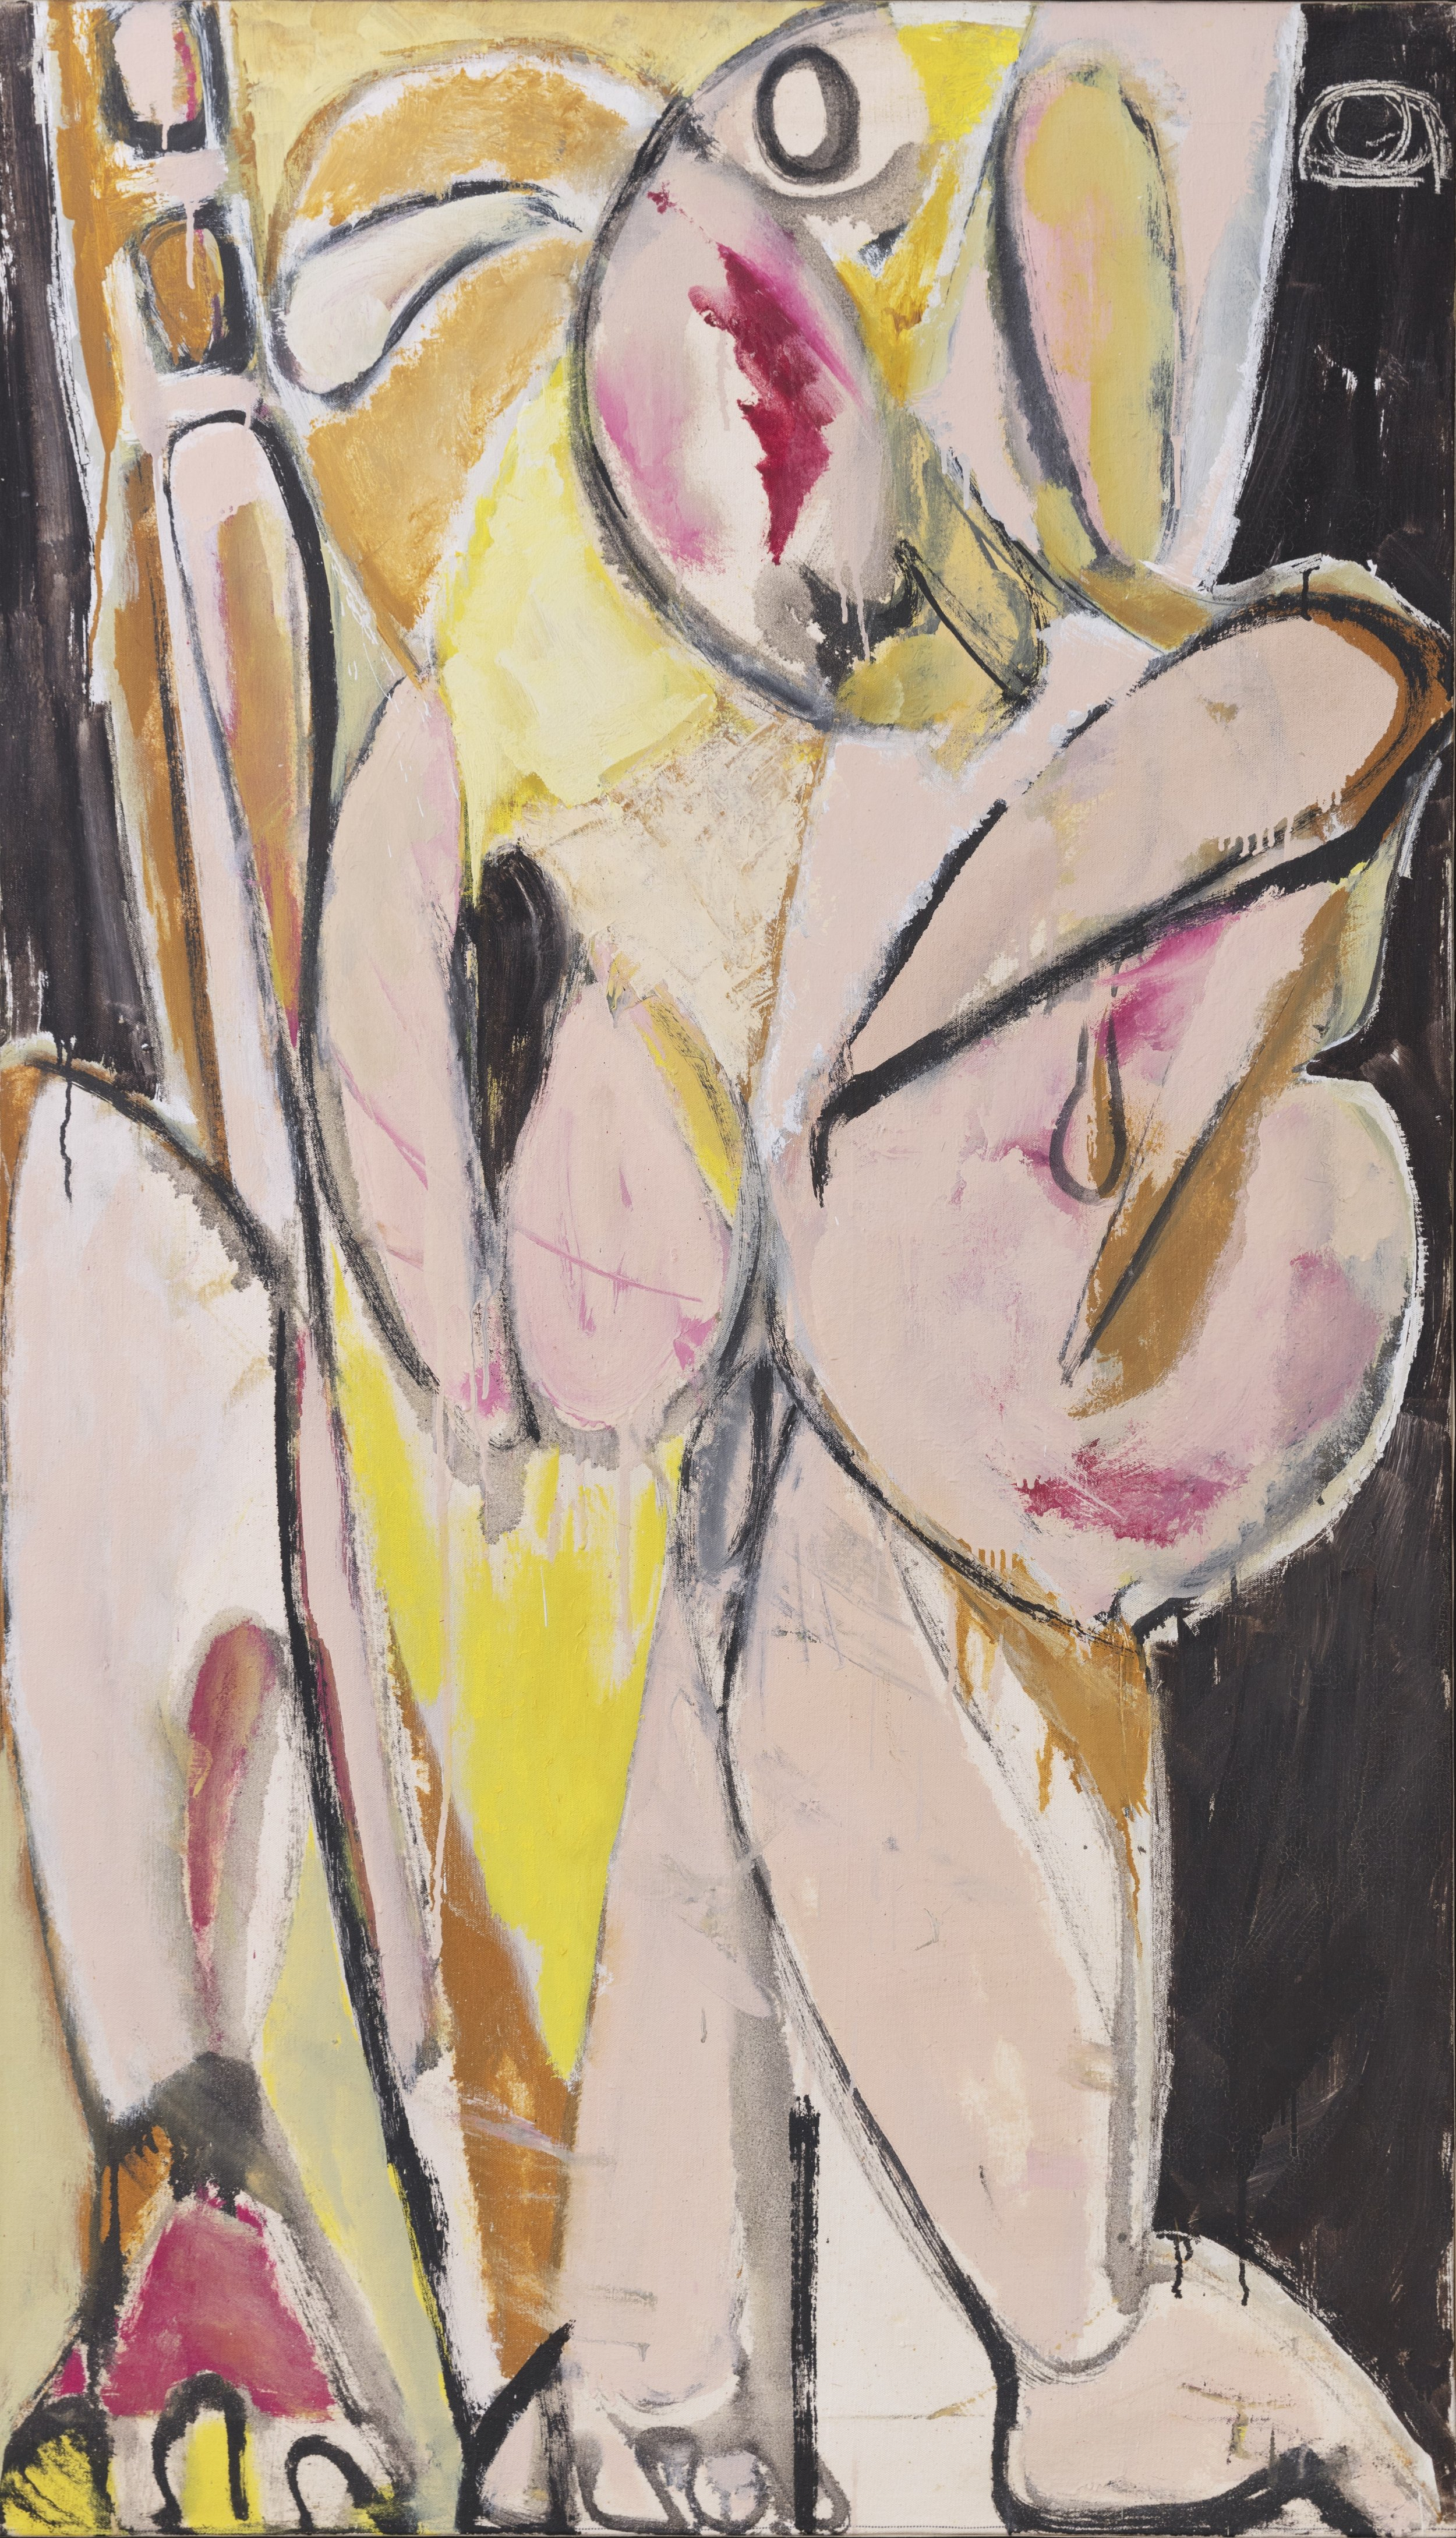 Lee Krasner, Prophecy, 1956, Private Collection. © The Pollock-Krasner Foundation. Courtesy Kasmin Gallery, New York. Photograph by Christopher Stach